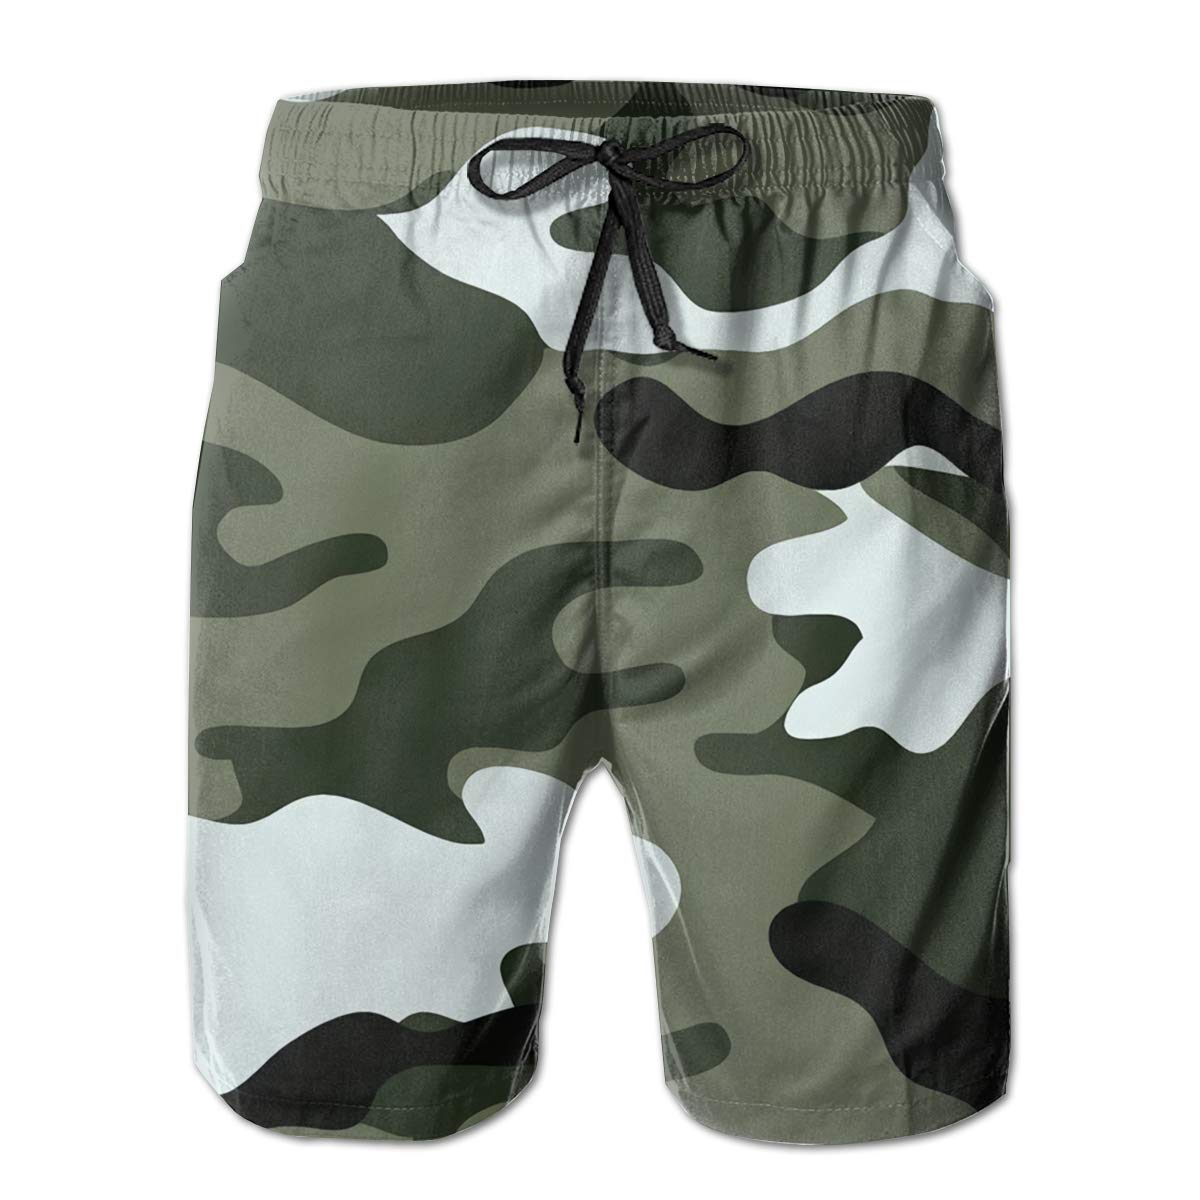 KGNVNA Army Camouflage Mens Slim Fit Ultra Quick Dry Board Shorts Swim Trunks,Best Board Shorts for Sports Running